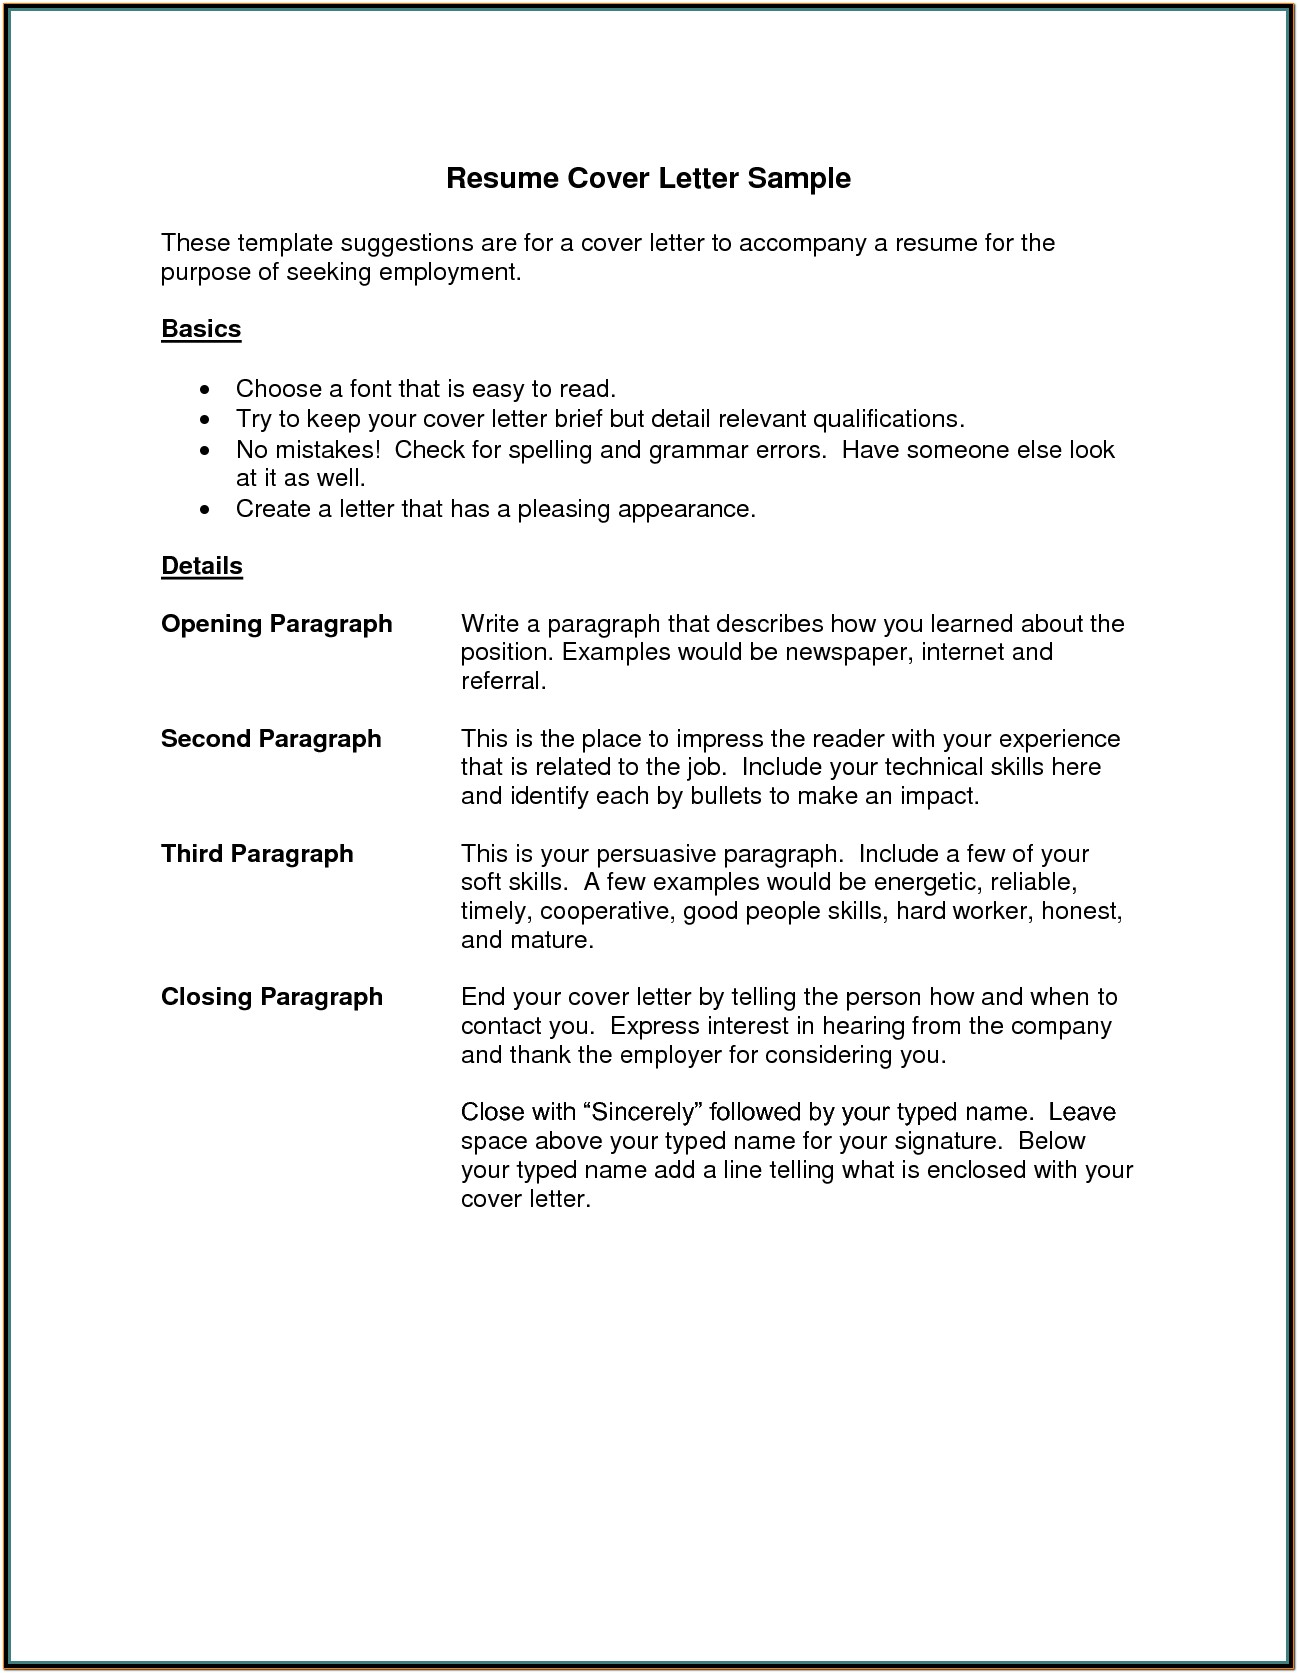 Samples Of Resume Cover Letters Investment Advisor Assistant Cover Regarding Examples Of Cover Letter For Resume Template